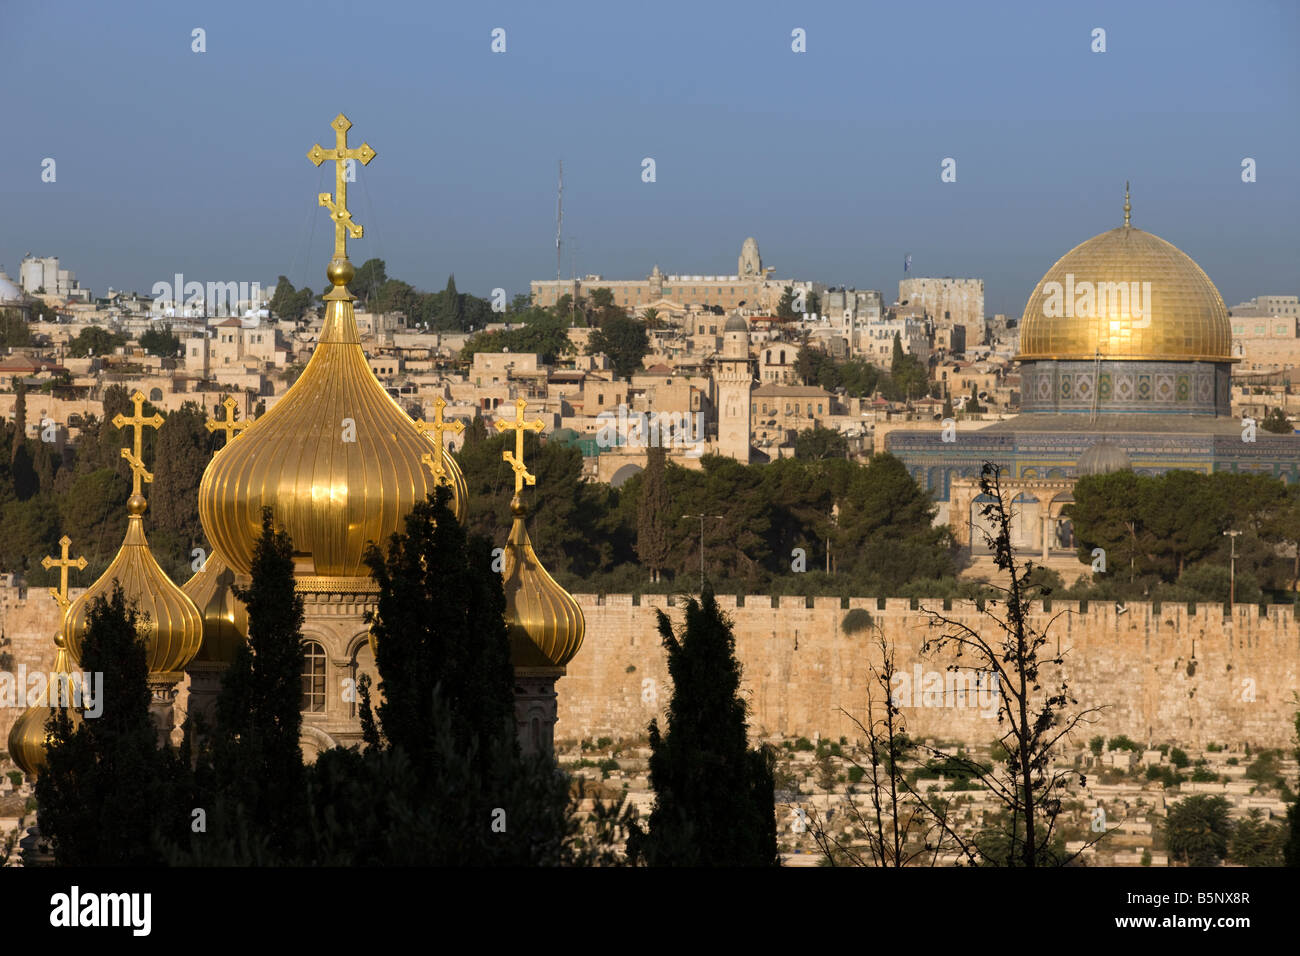 RUSSIAN ORTHODOX CHURCH DOMES AND DOME OF THE ROCK TEMPLE MOUNT OLD CITY JERUSALEM ISRAEL - Stock Image